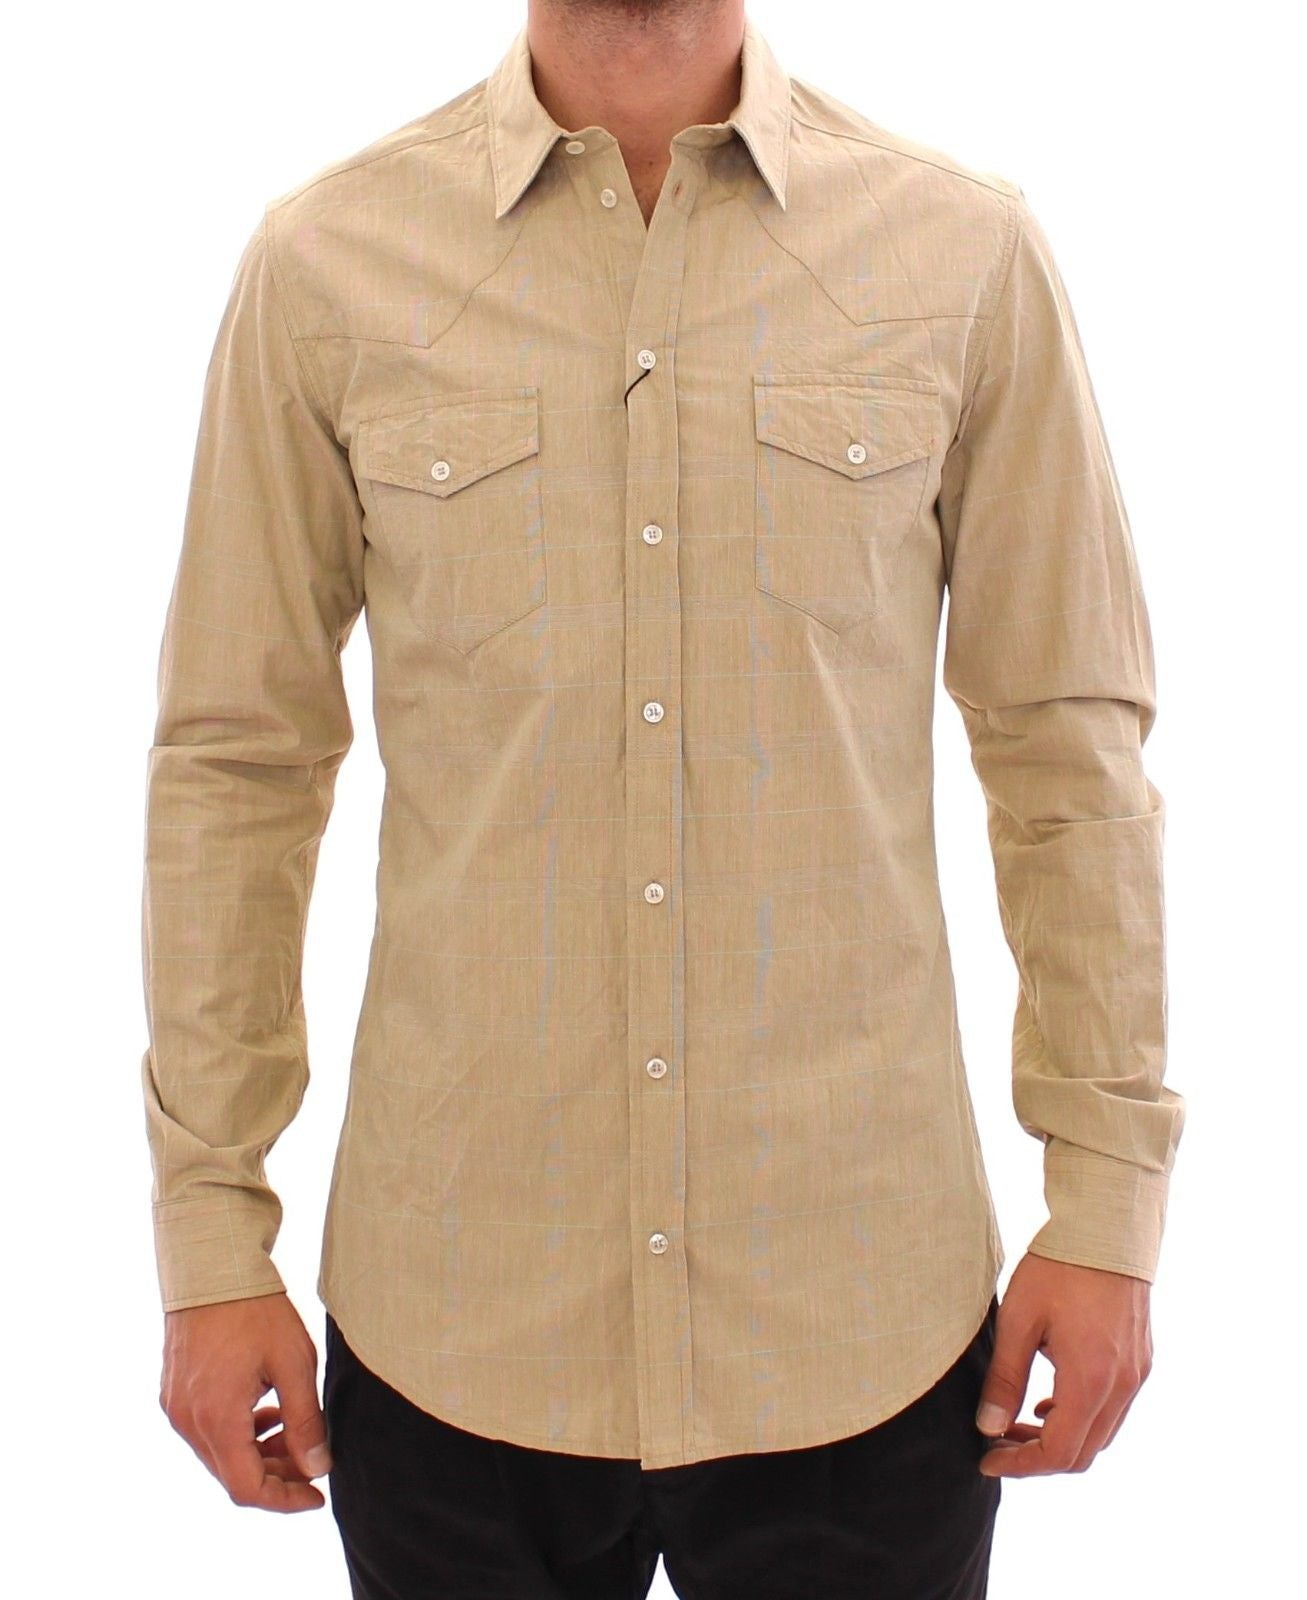 Image of Dolce & Gabbana Beige Checkered SICILIA Fit Logo Casual Shirt